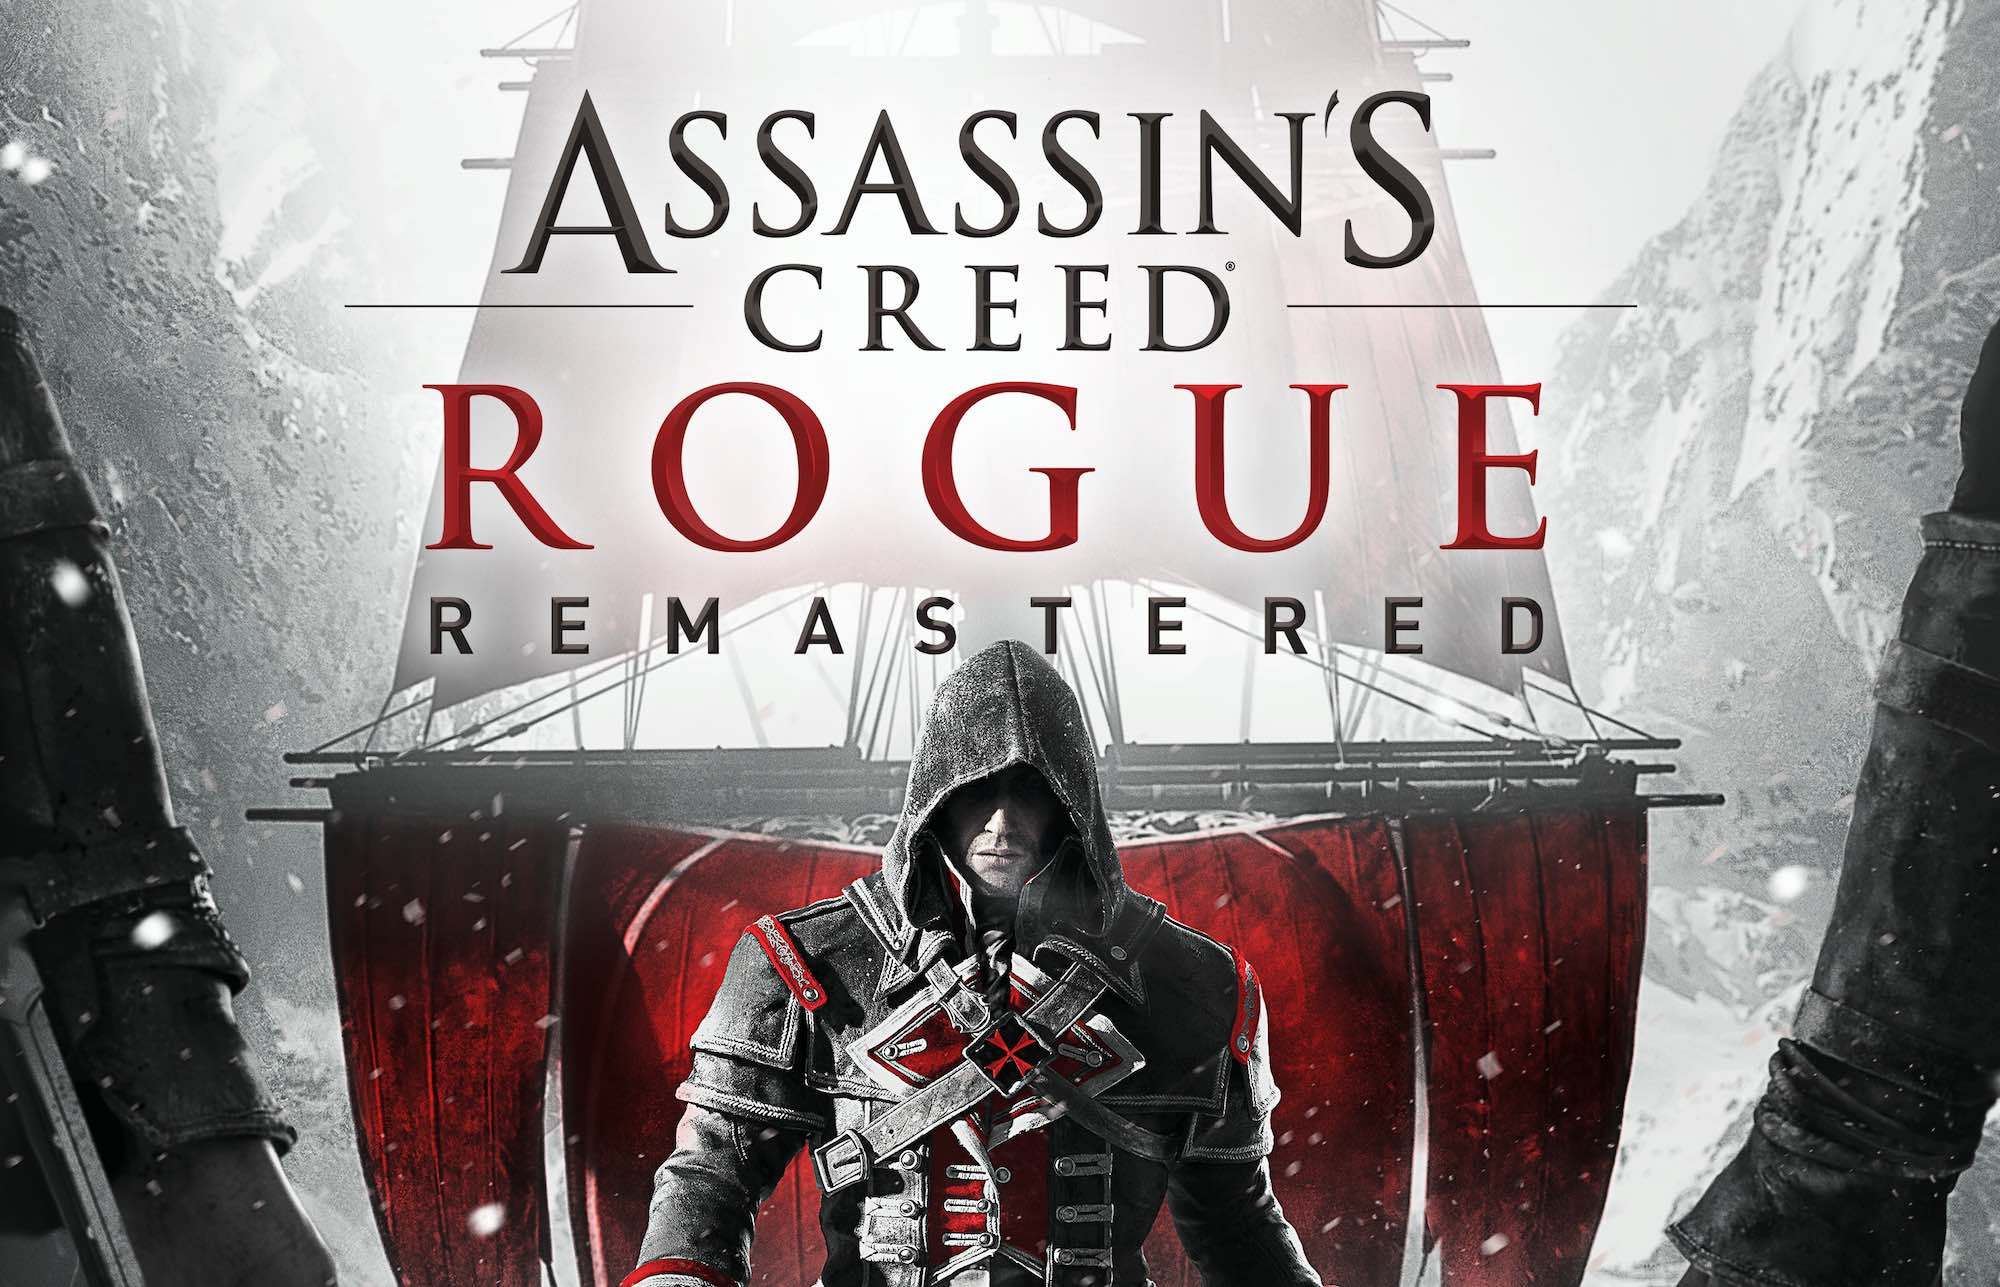 Assassin's Creed Rogue Remastered Revealed